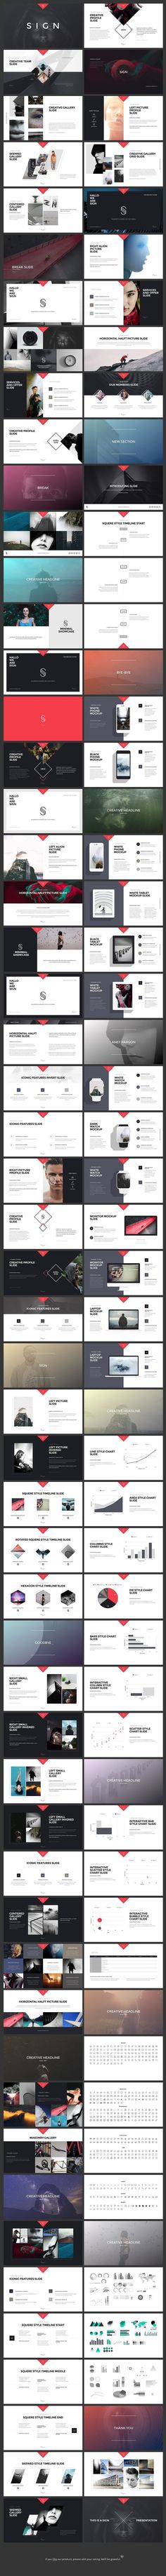 SIGN Keynote Presentation Template #keynote #template #simple #business